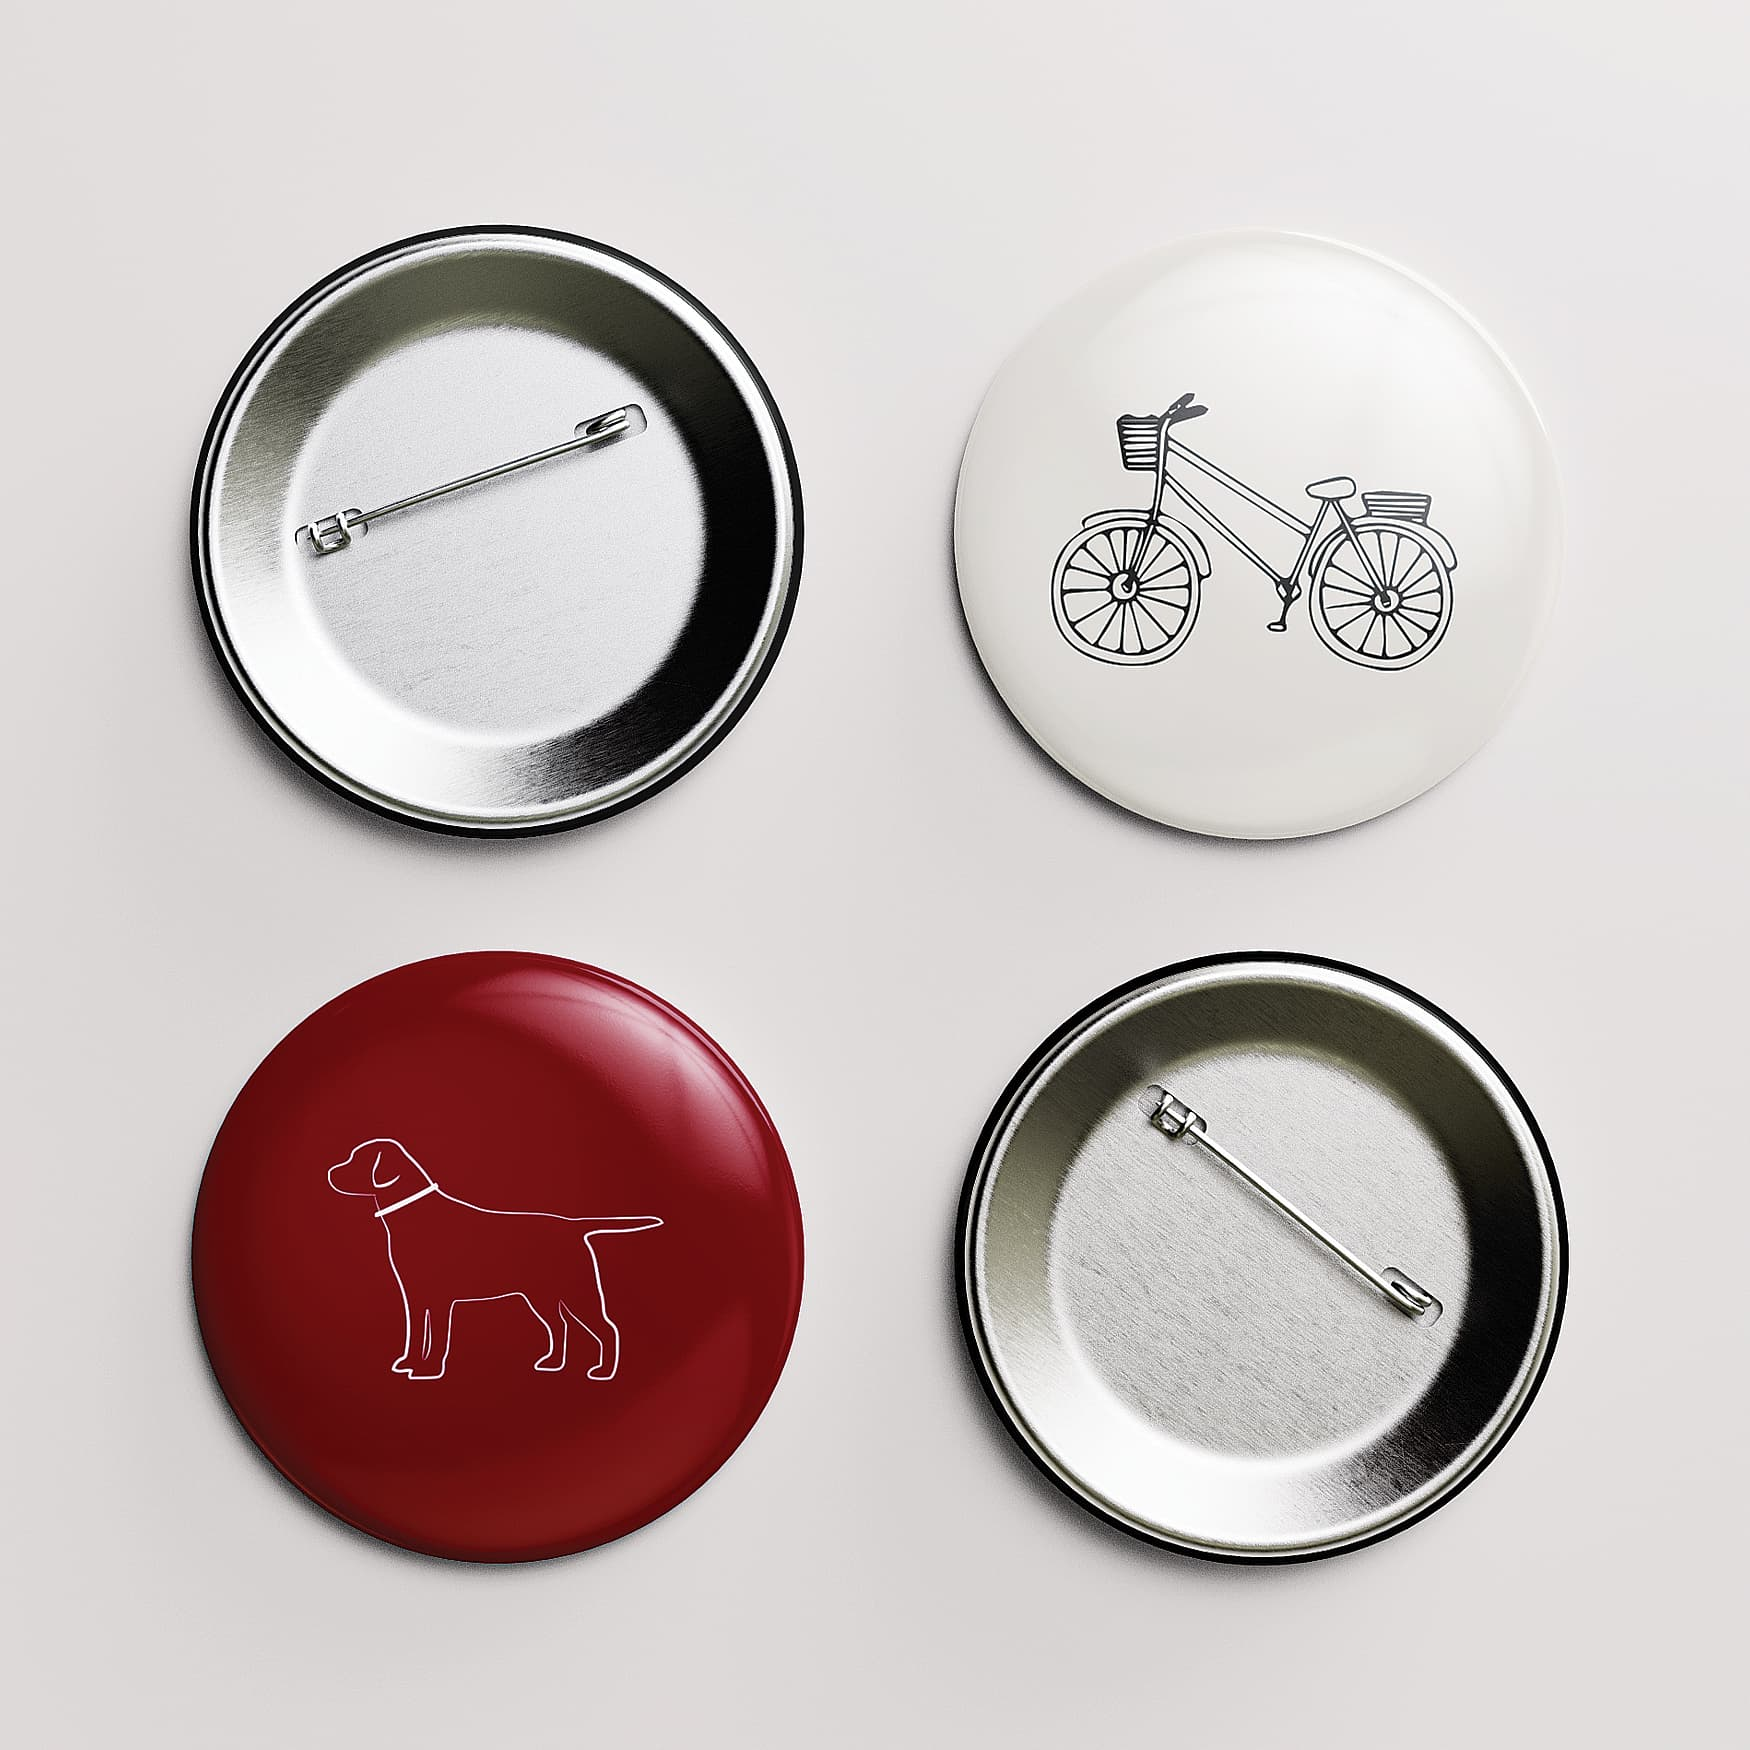 Red and white pins with branded illustrations printed on them.